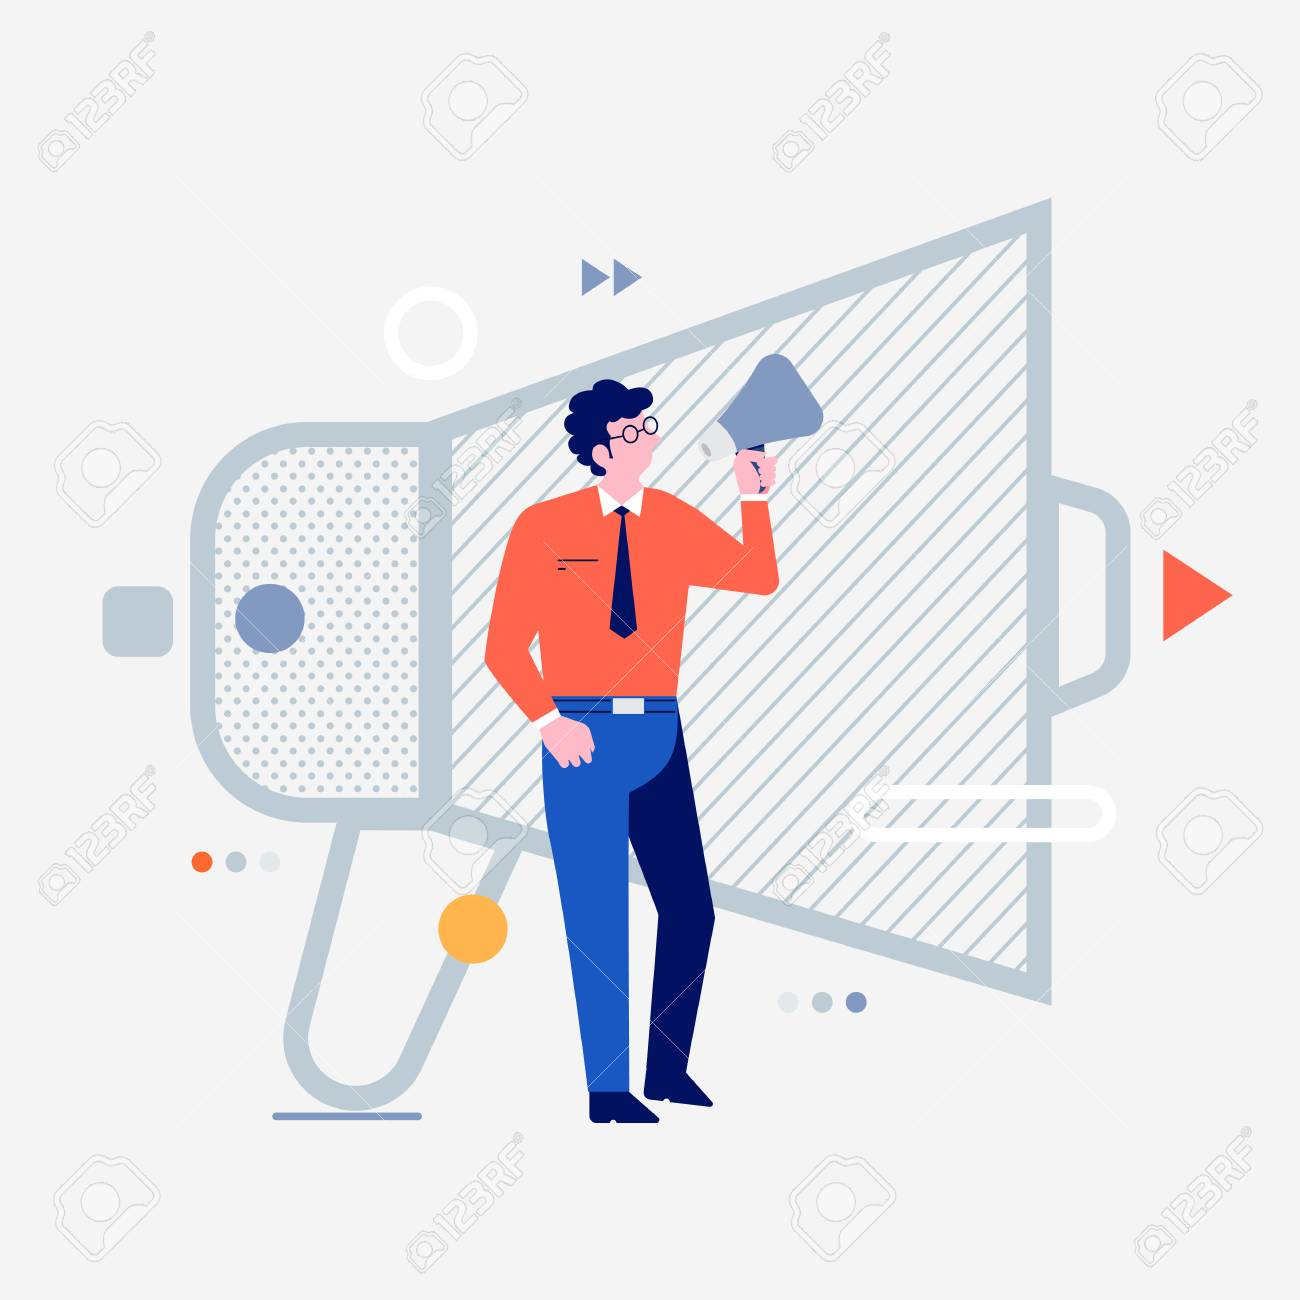 Cartoon peoples using internet device like smartphone and laptop with digital lifestyle icon. Advertising mega phone. Vector illustrations. - 119684424